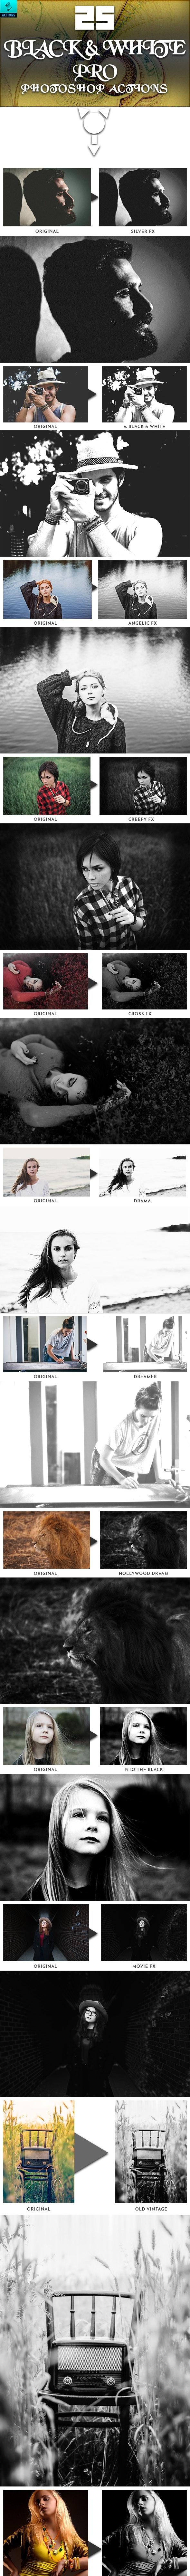 25 Black & White PRO Photoshop Actions - Actions Photoshop